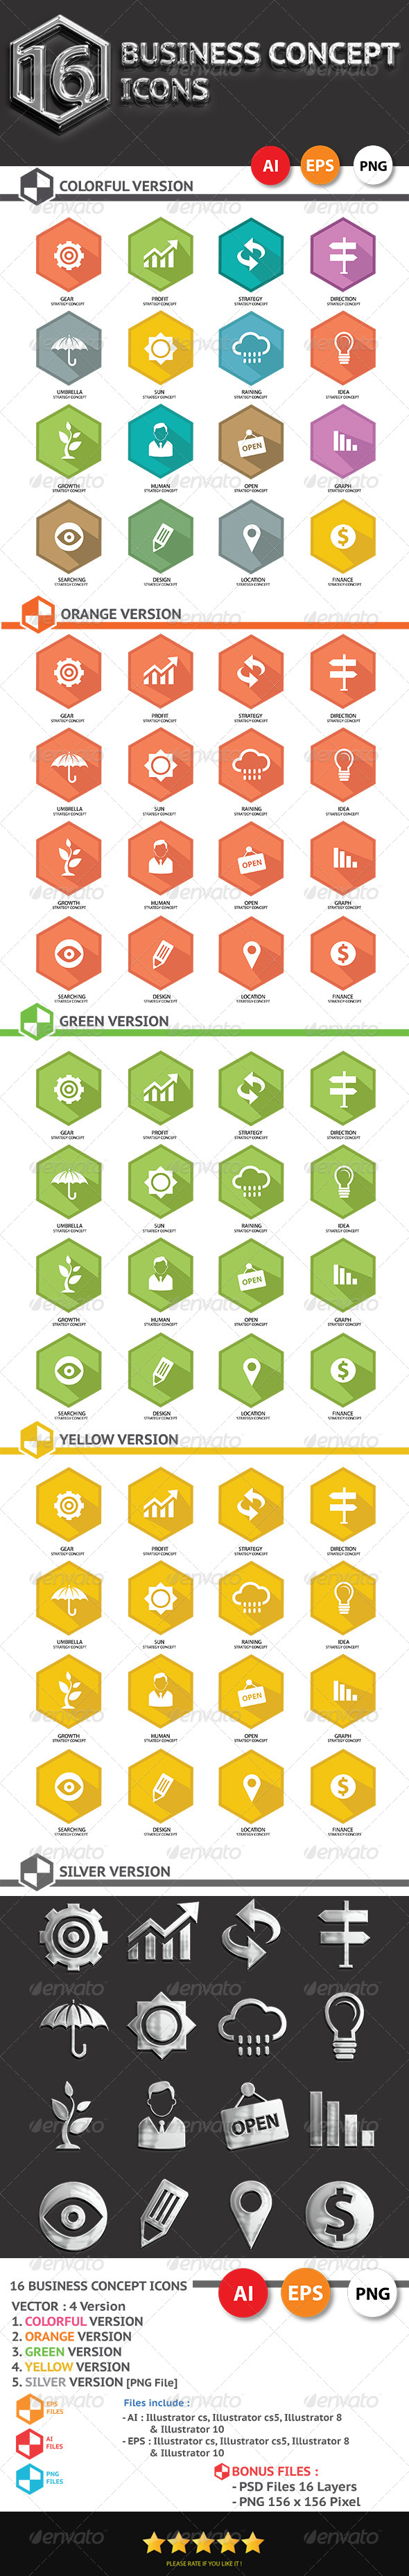 16 Business Concept Icons - Business Icons